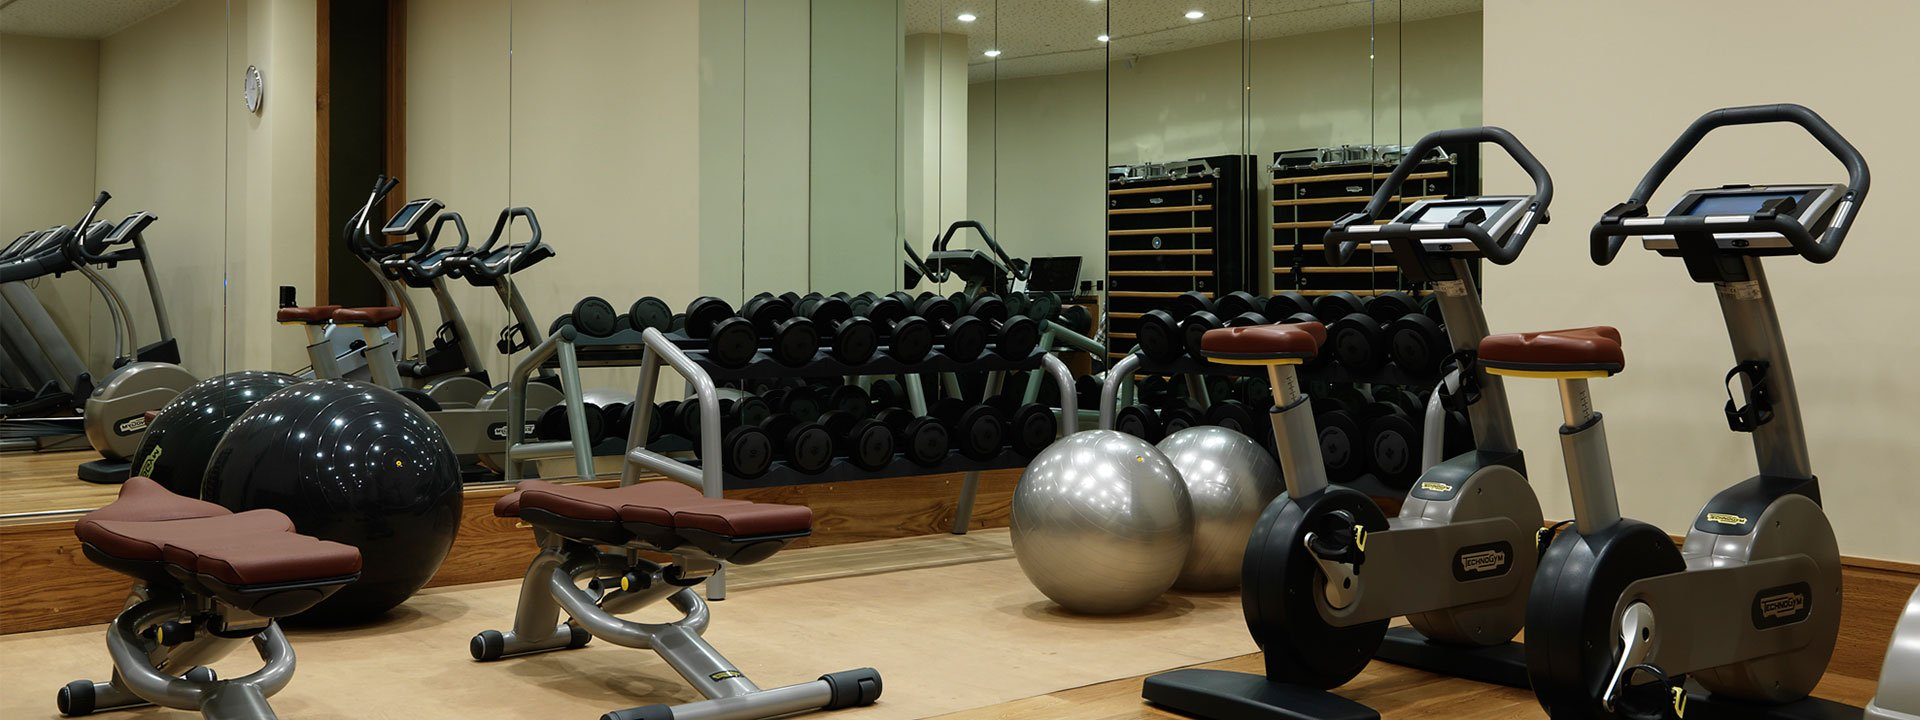 The gym at The Connaught